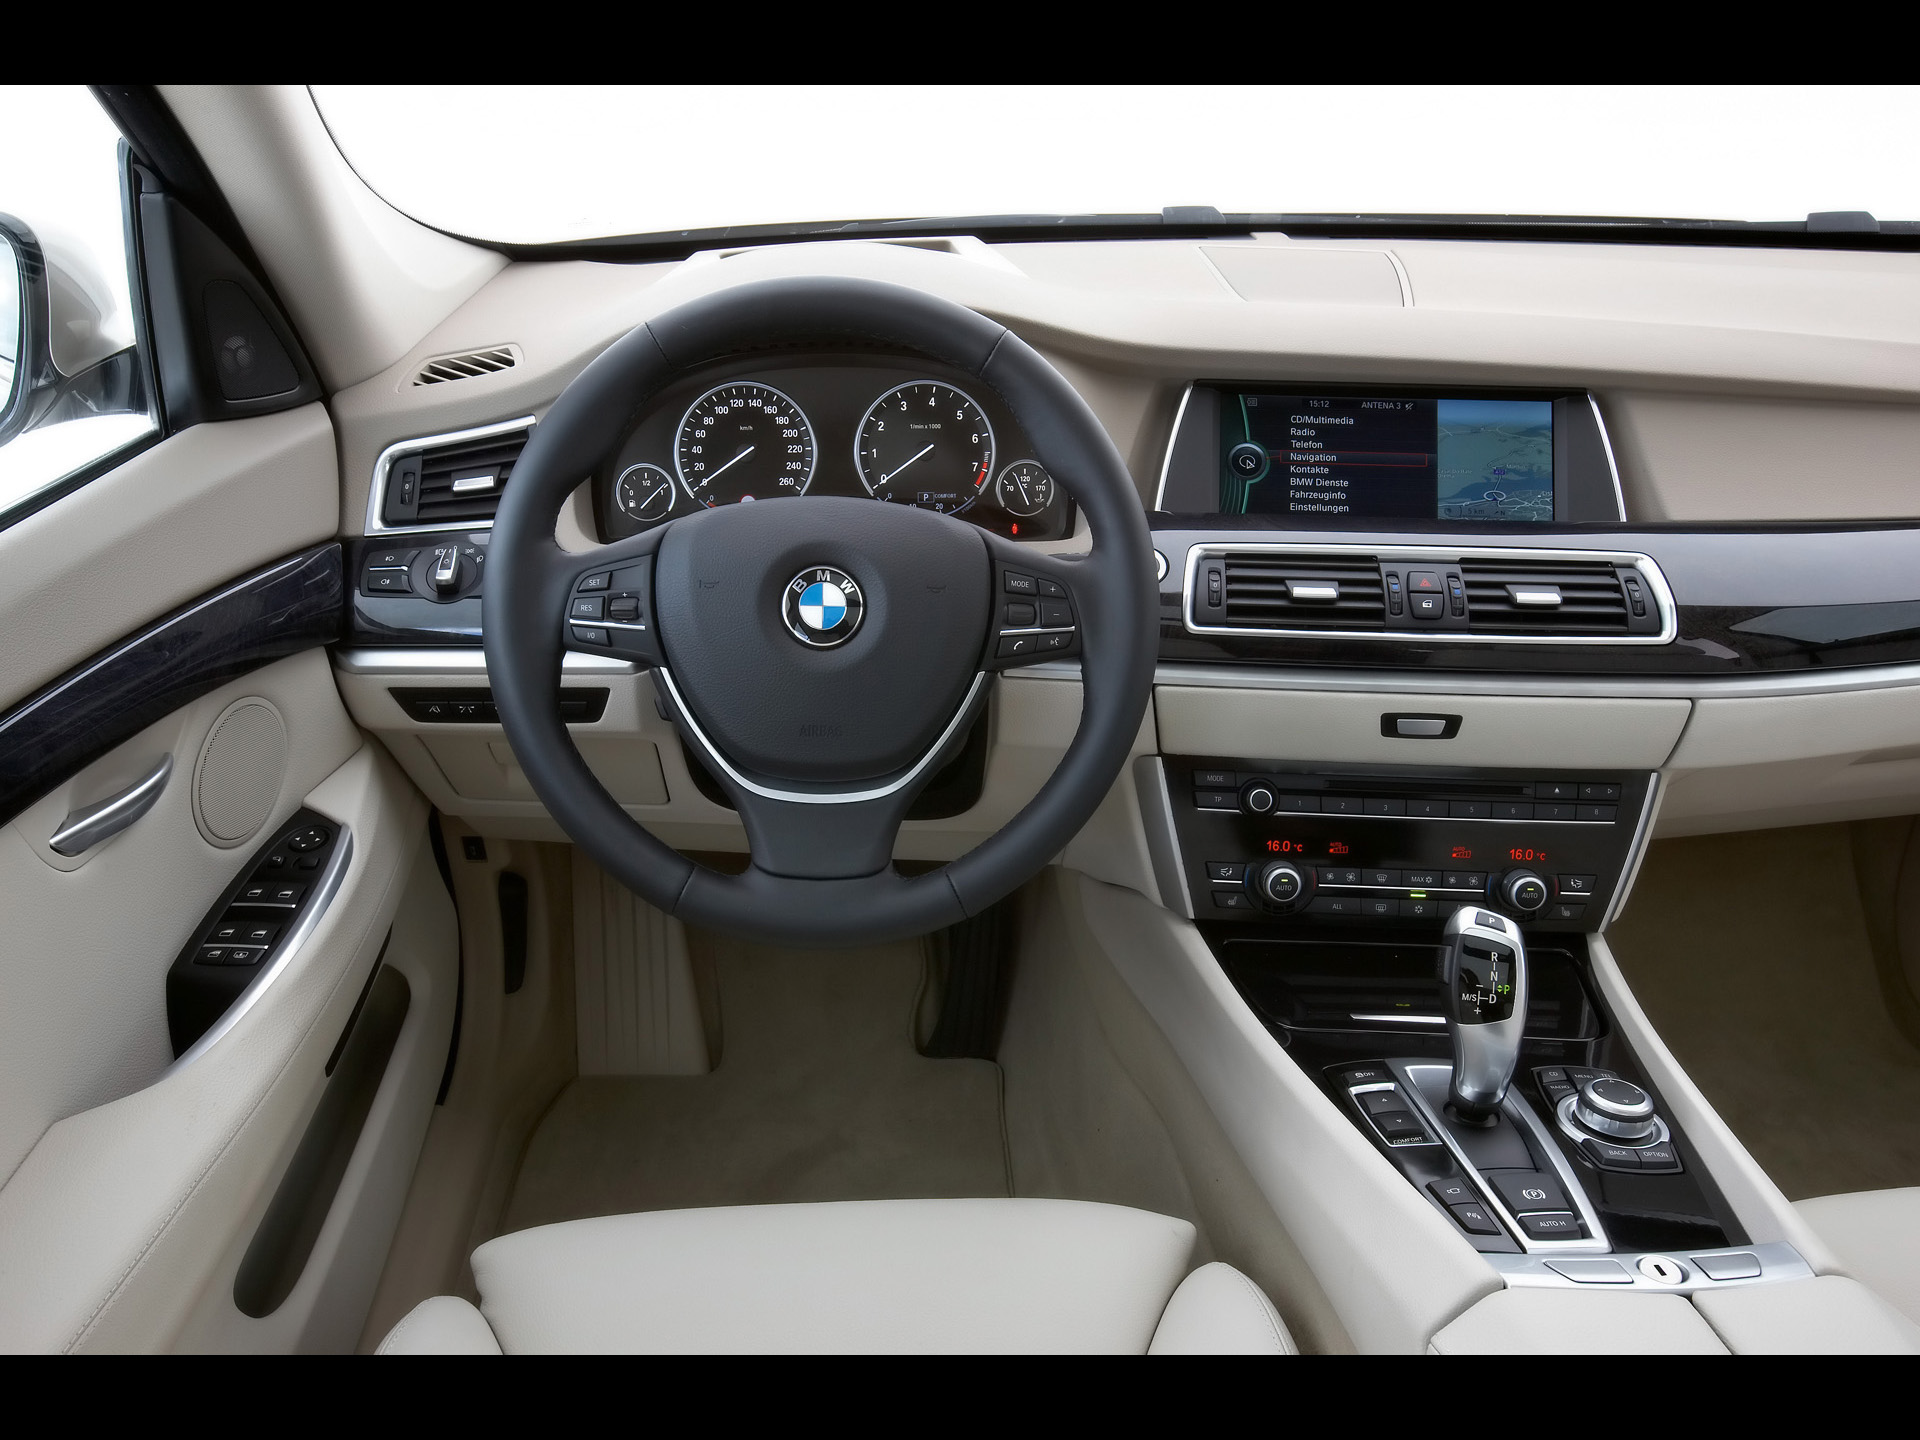 2009 bmw 5 series information and photos zombiedrive